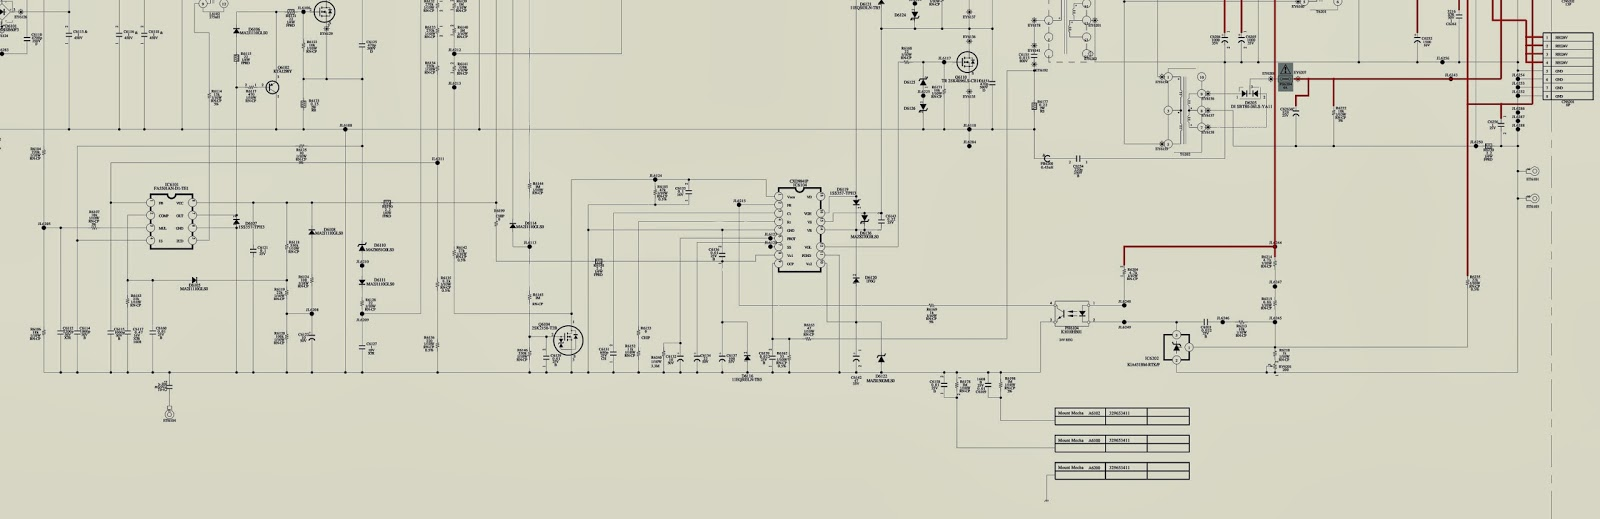 Sony Klv 32l500a Power Supply Schematicon Power Supply Circuit Diagram